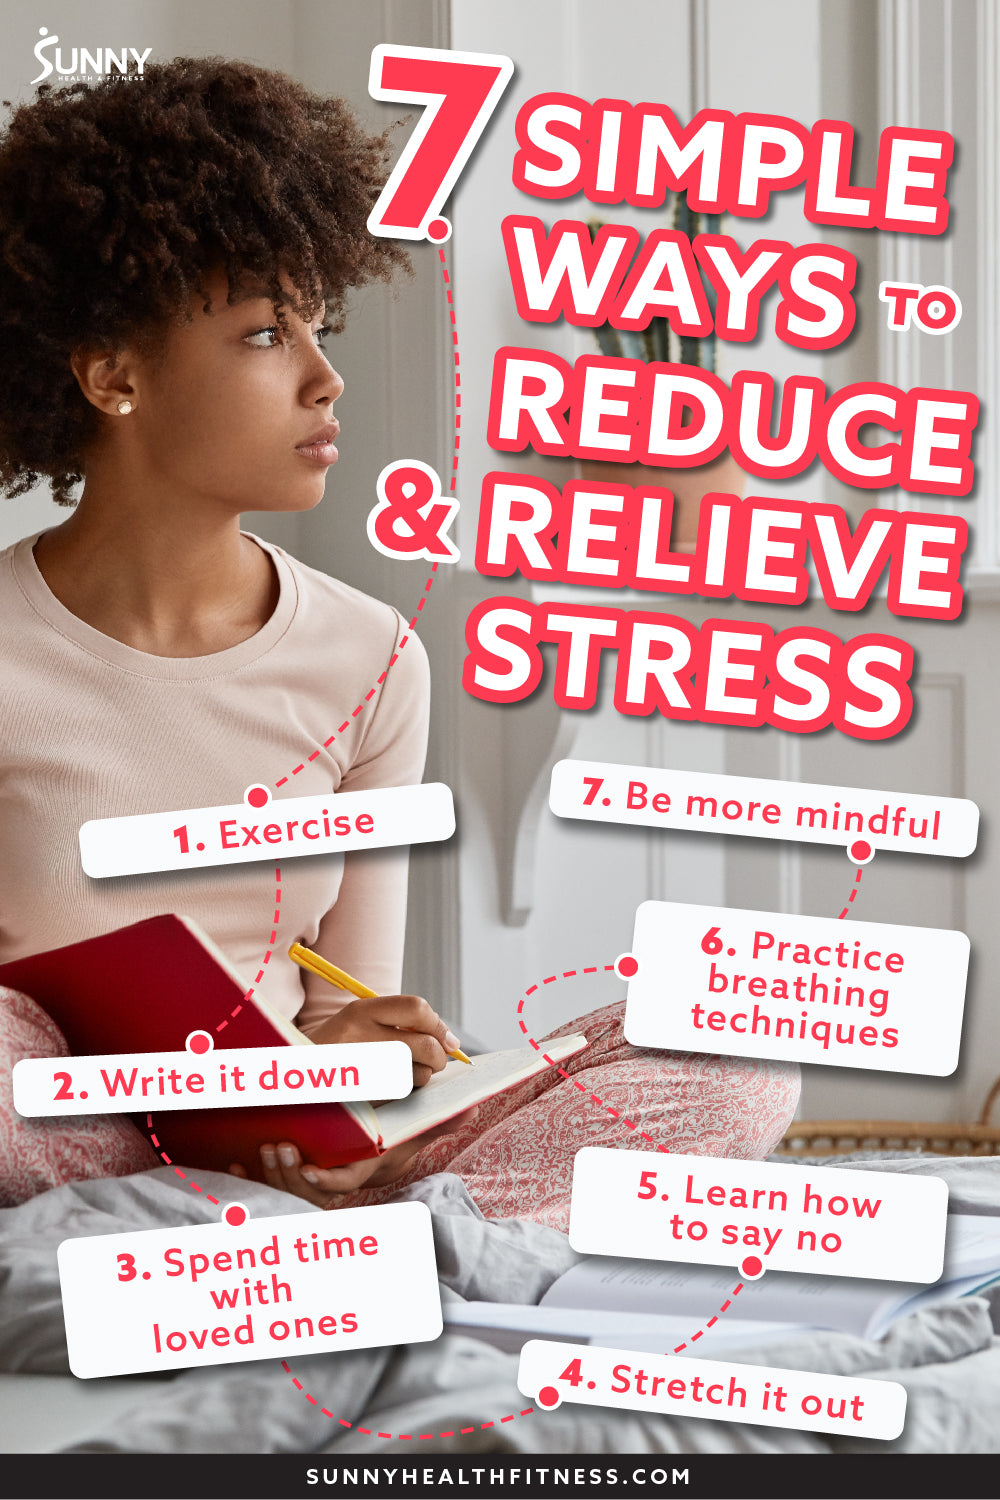 How To Reduce & Relieve Stress in 7 Simple Ways